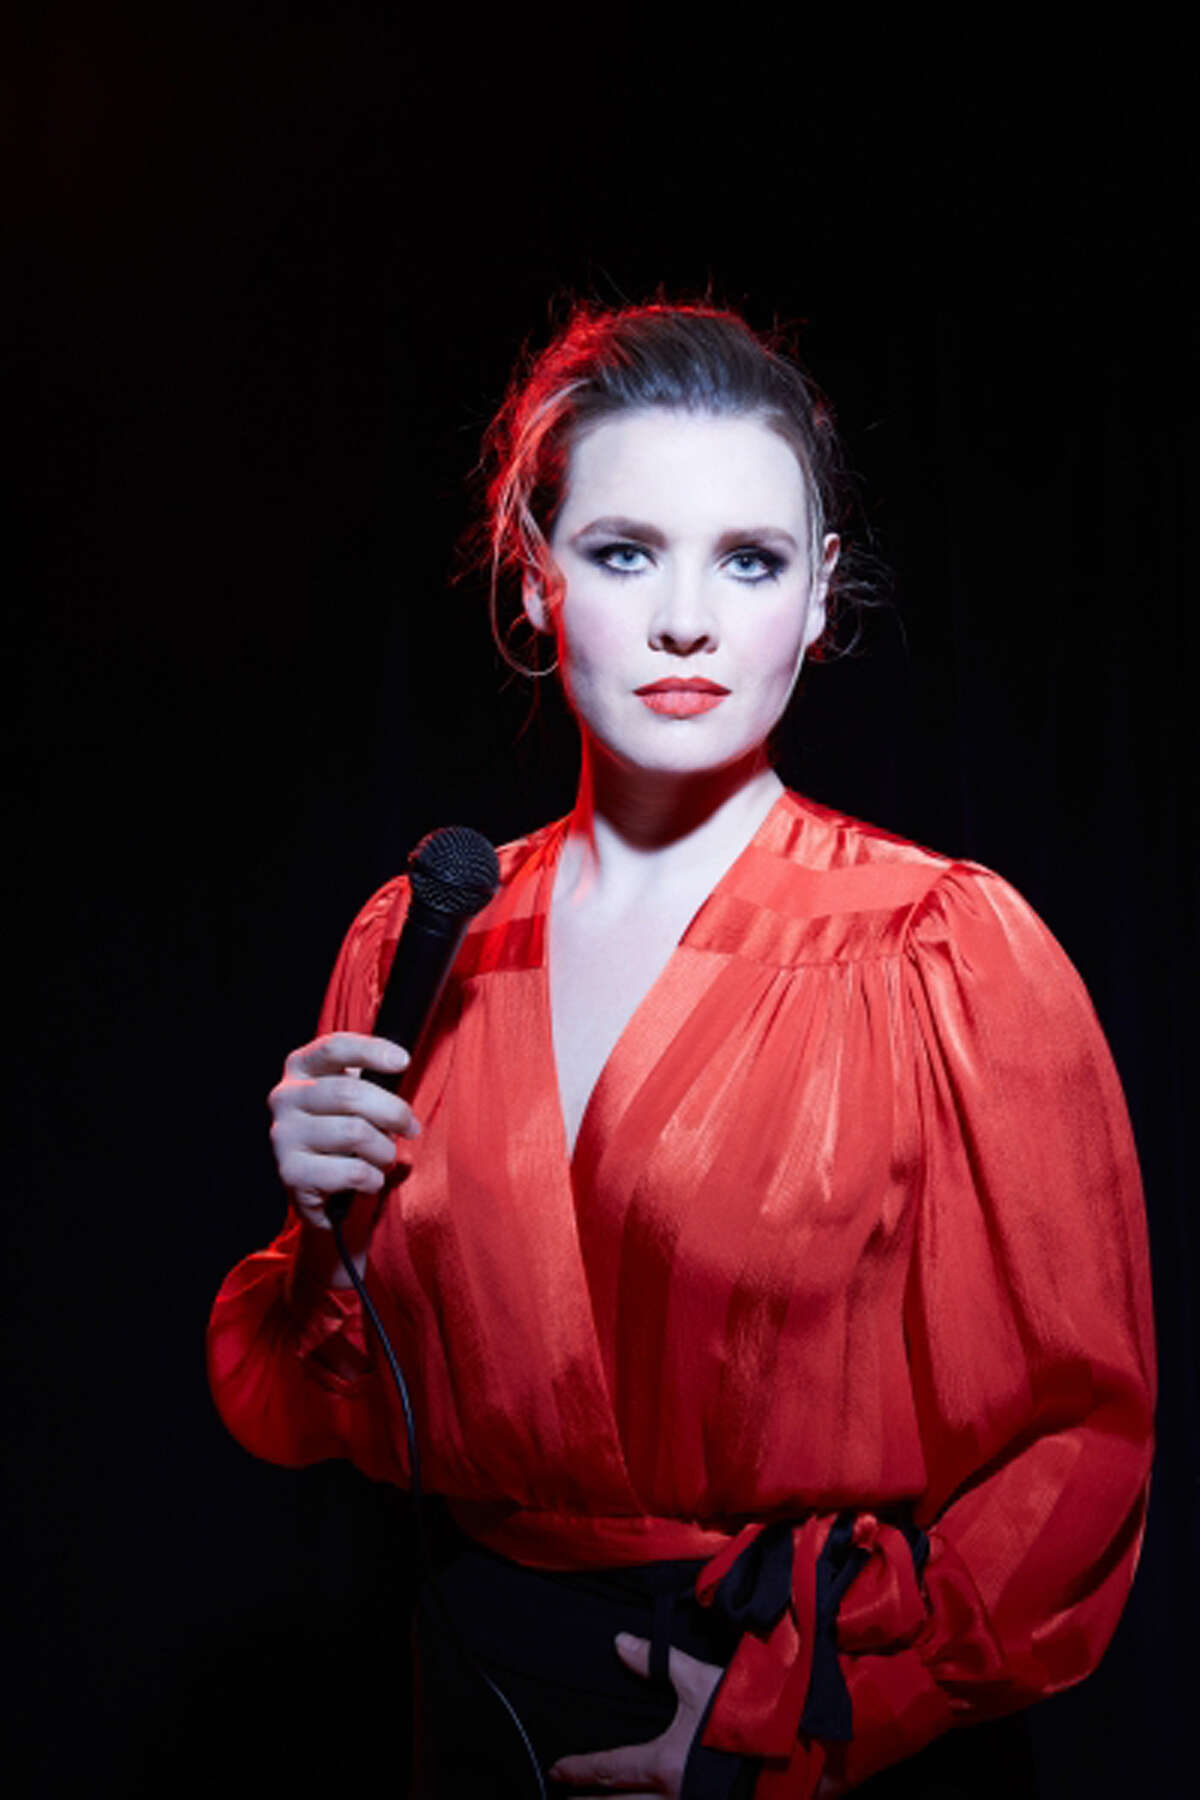 Jazz vocalist Polly Gibbons will perform Oct. 21 as part of the Bop Island Jazz Festival at the Woodstock Playhouse.